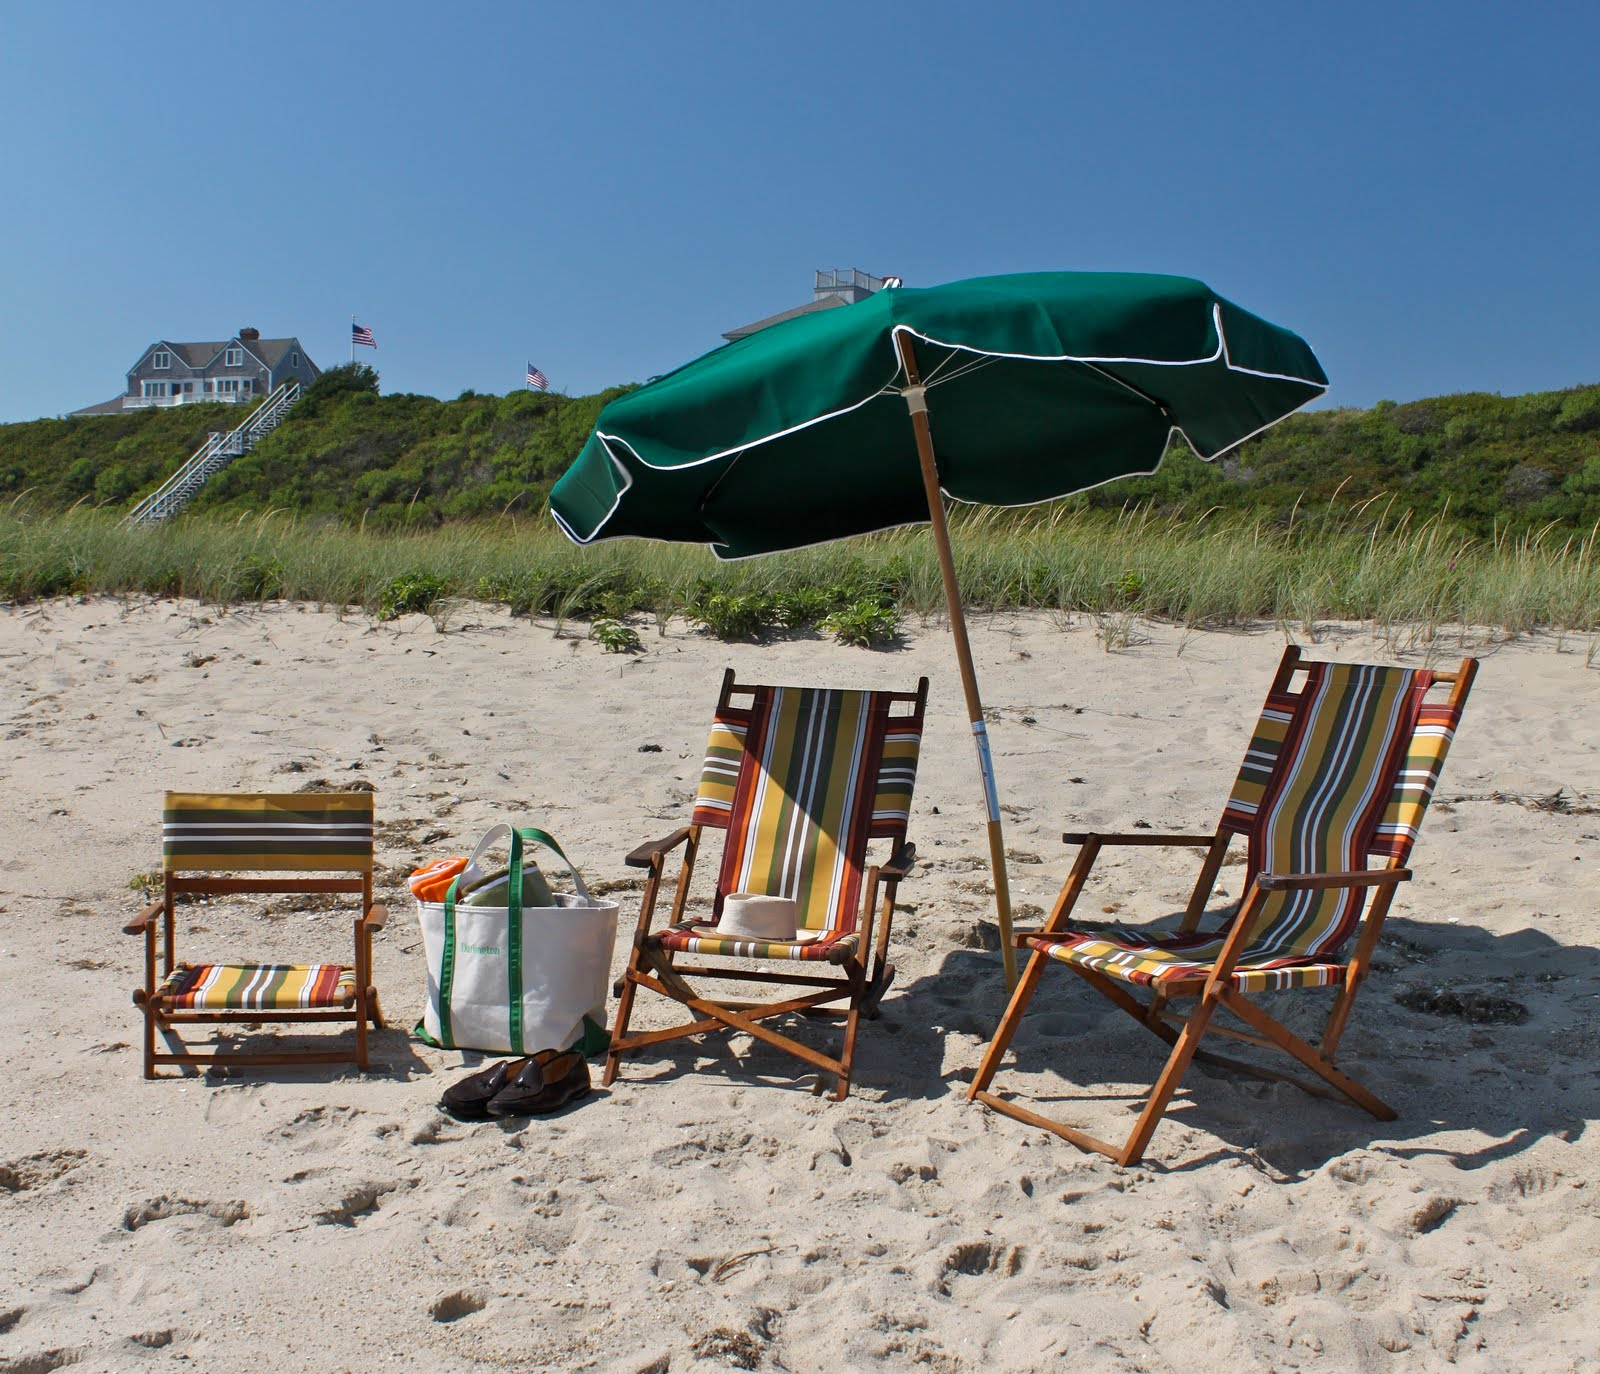 Our Chairs And Umbrella Set Up On The Beach